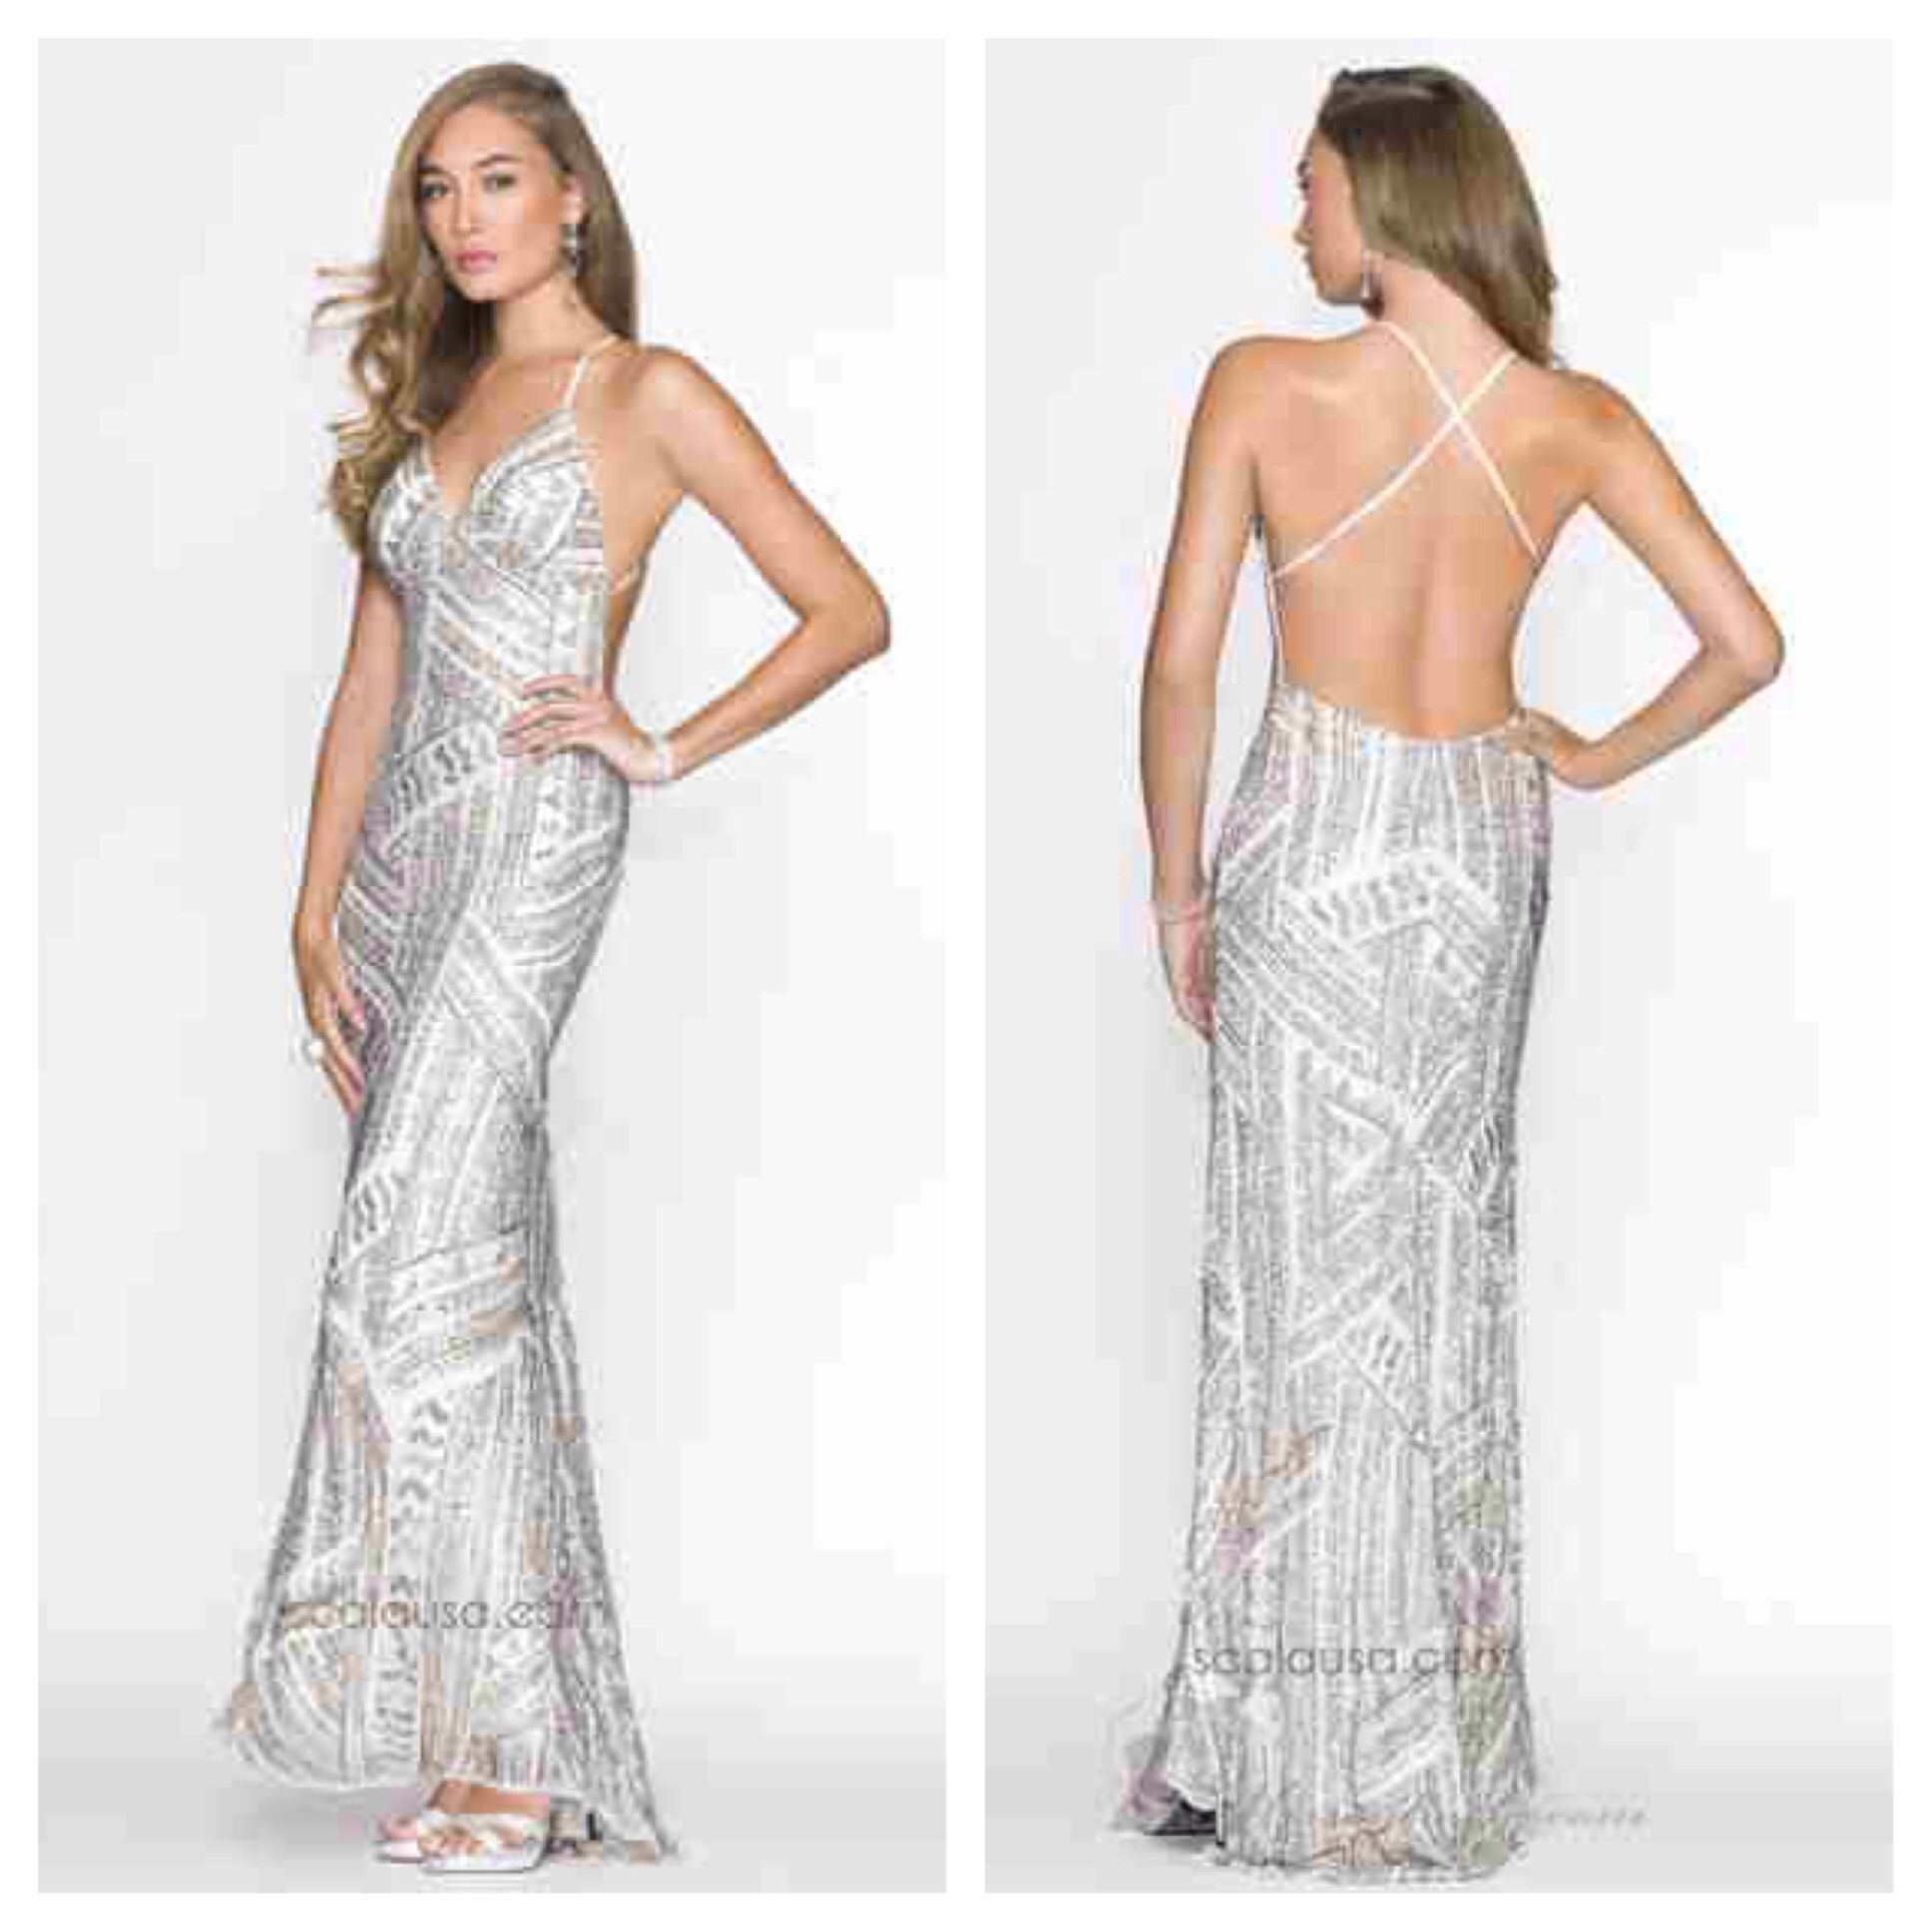 Never too early to start shopping for your prom dress. Check out Scala 47698 for $398. Available in Ivory/Silver. mia bella couture. scala usa. scala. prom dress. prom 2015. long dress. evening gown. beautiful. stunning. breathtaking. wanelo.